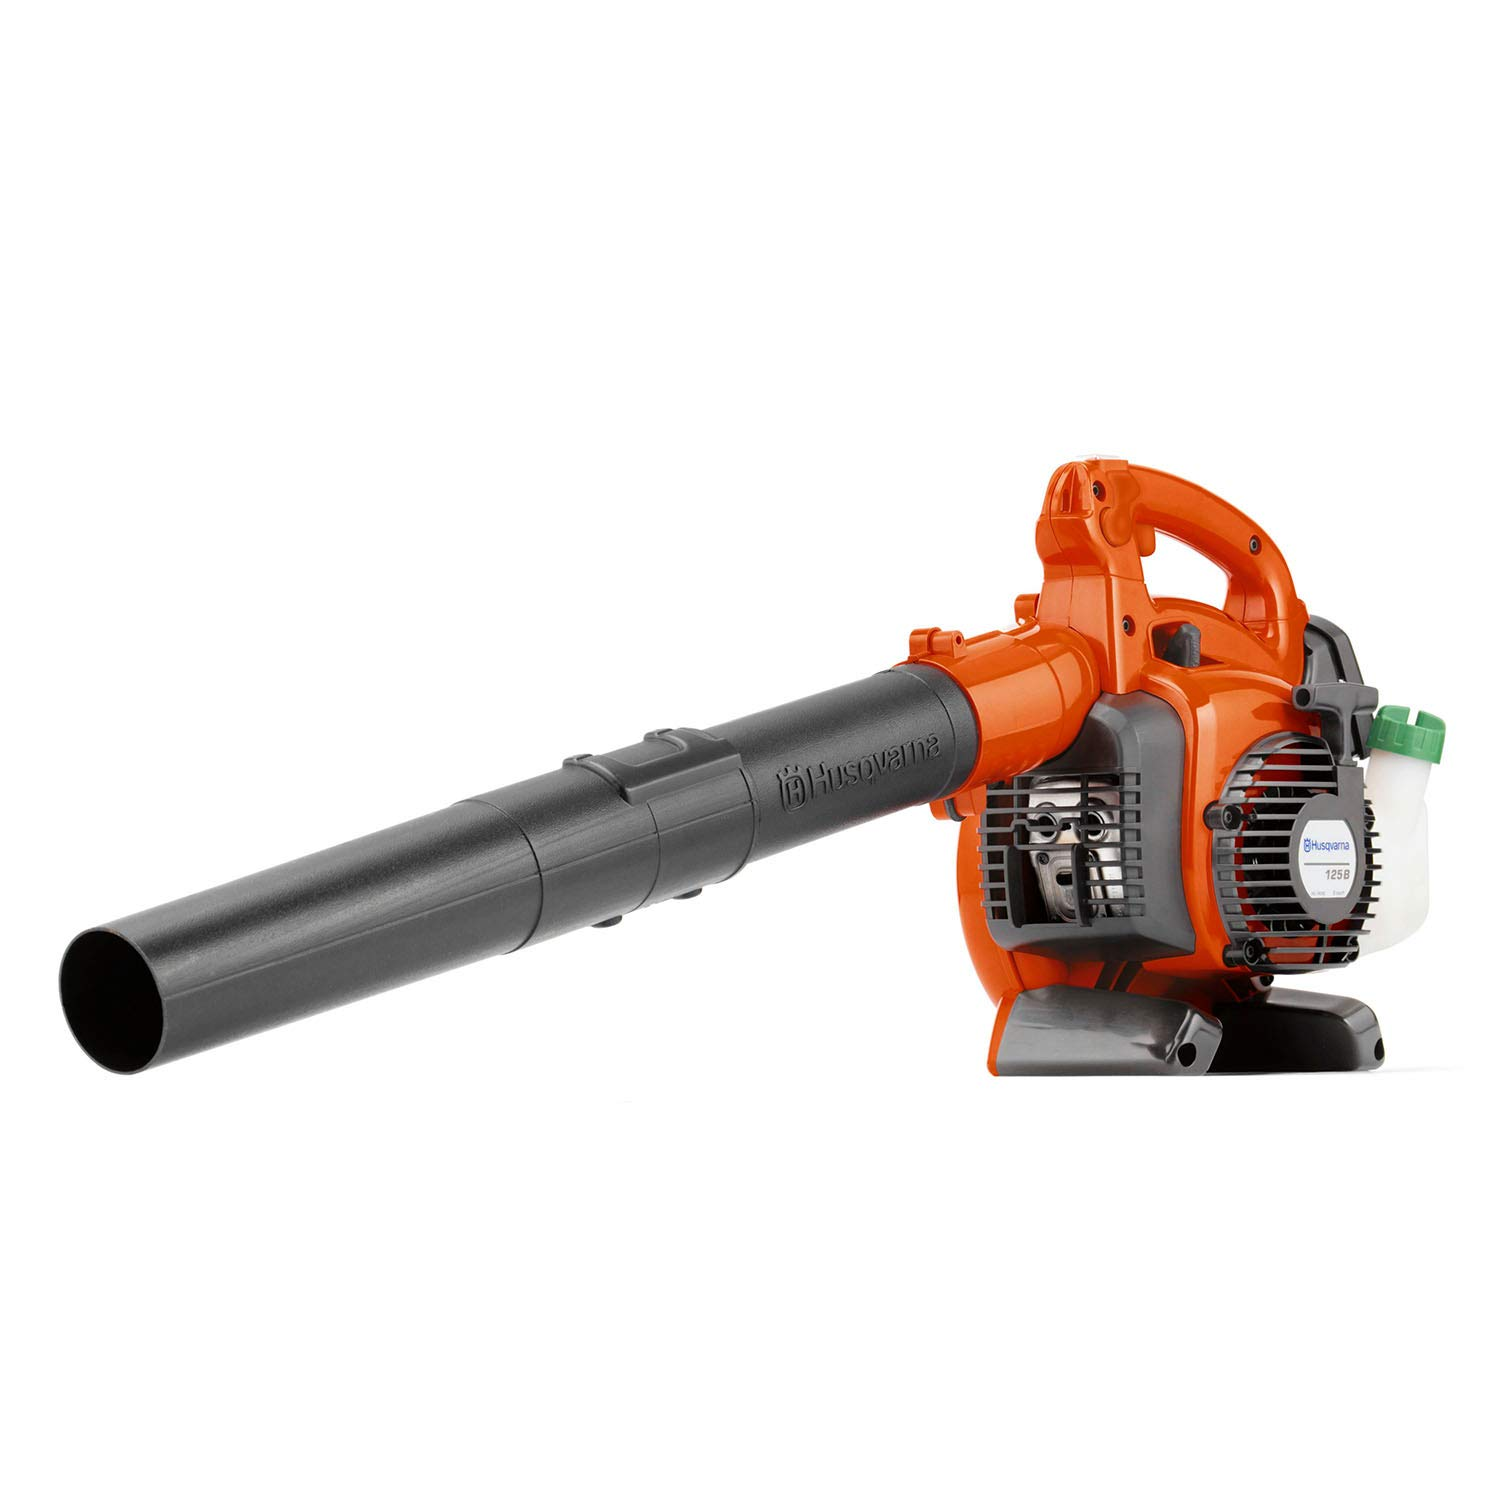 Husqvarna 952711925 125B Handheld Blower, Orange